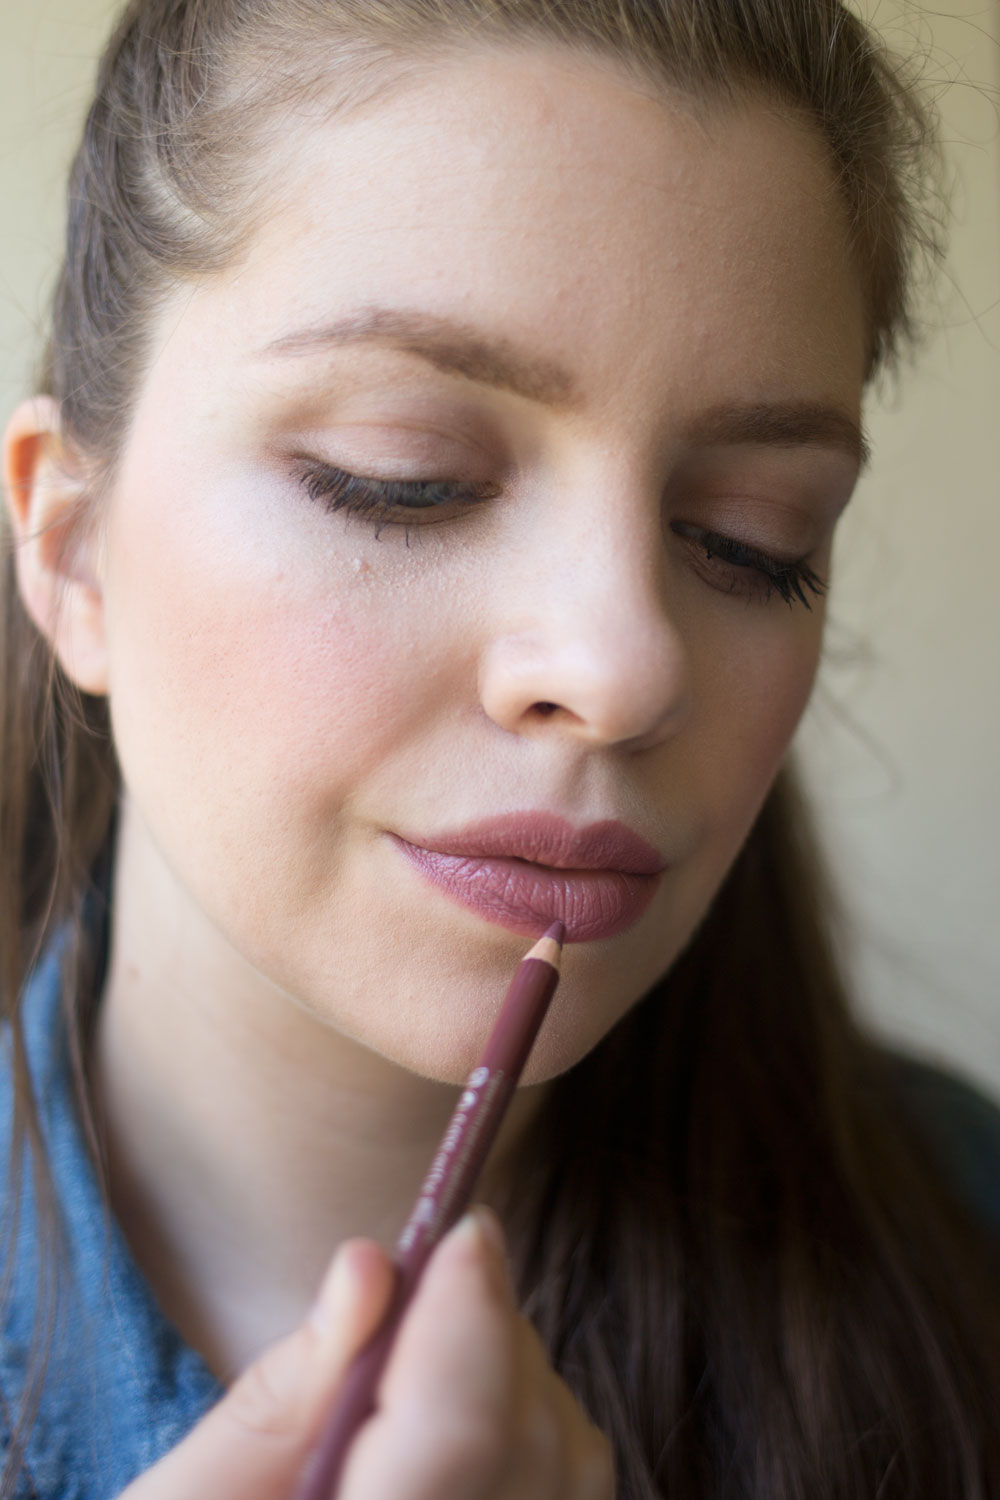 essence-cosmetics-lip-liner-soft-berry-review